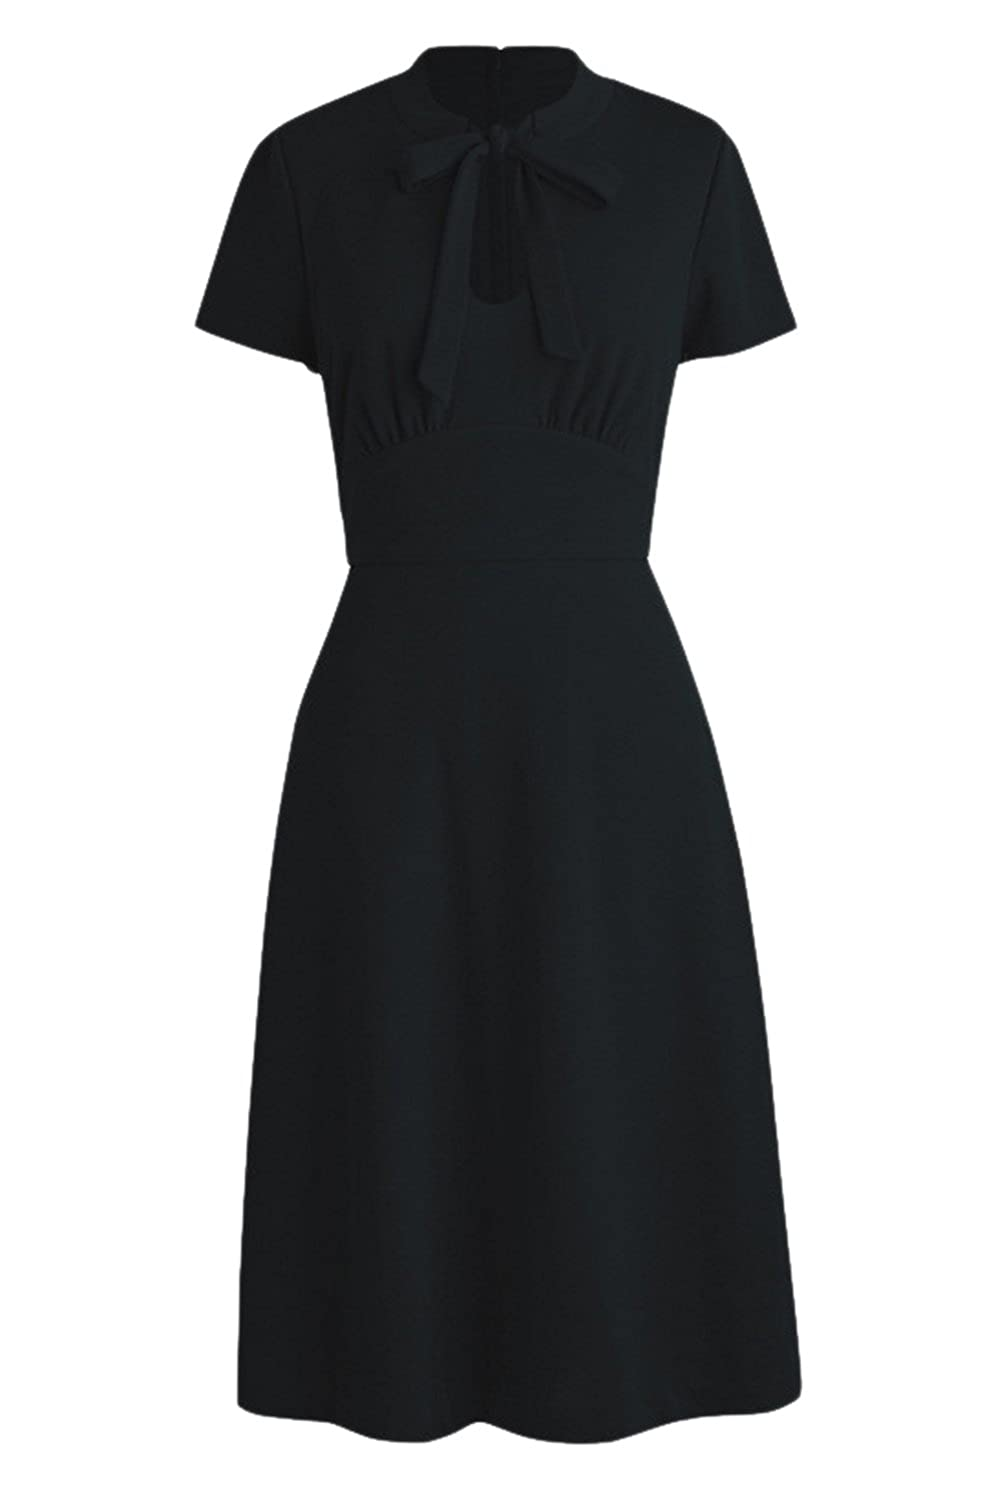 Women Vintage Keyhole Ruched Bowknot Fit and Flare A-Line Dress Black L